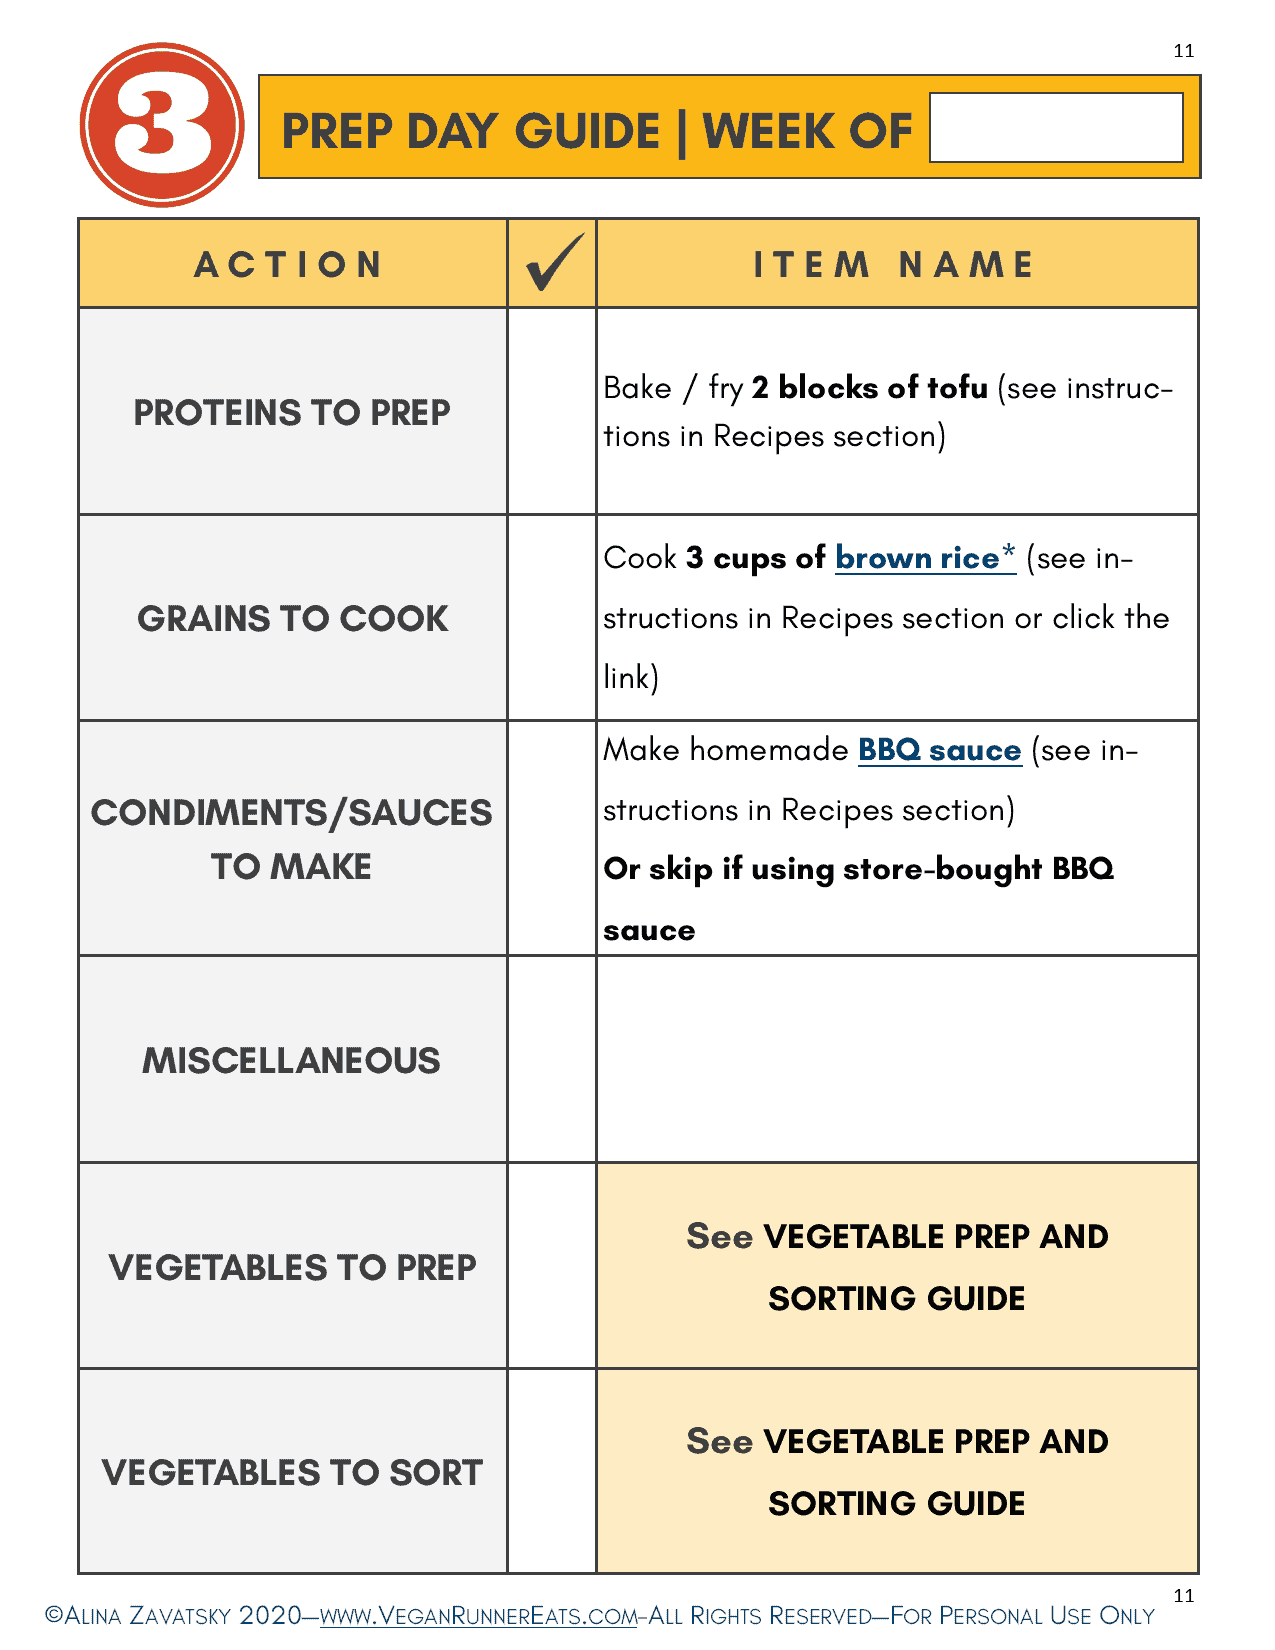 Weekly prep day guide